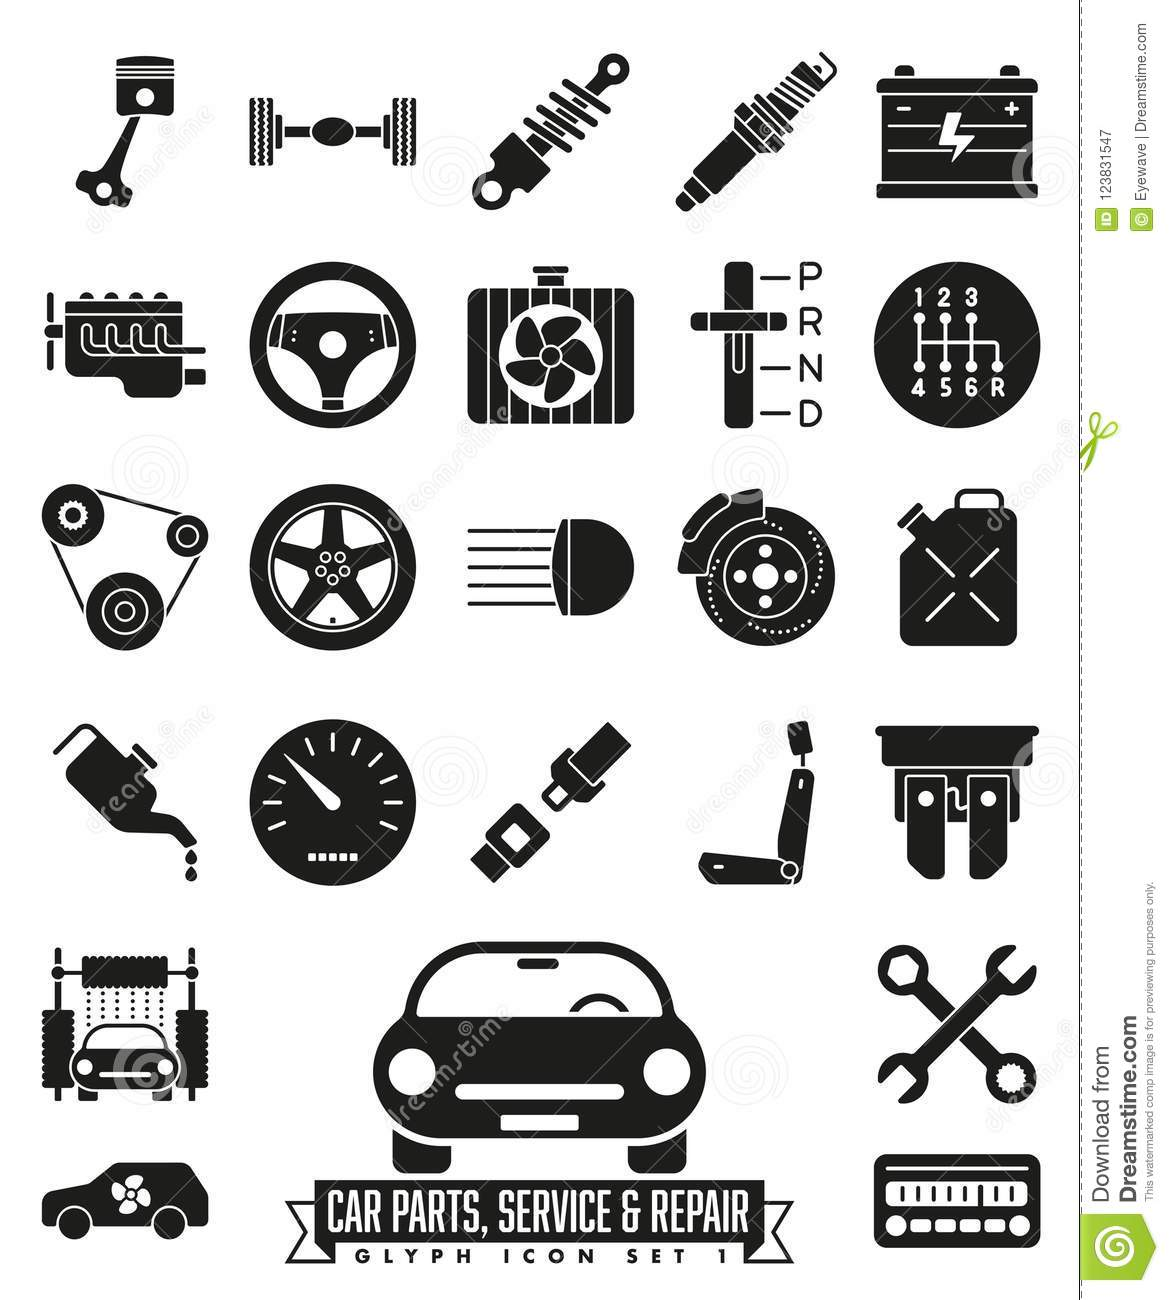 Car Parts Service And Repair Glyph Icon Set Stock Vector Illustration Of Steering Symbol 123831547